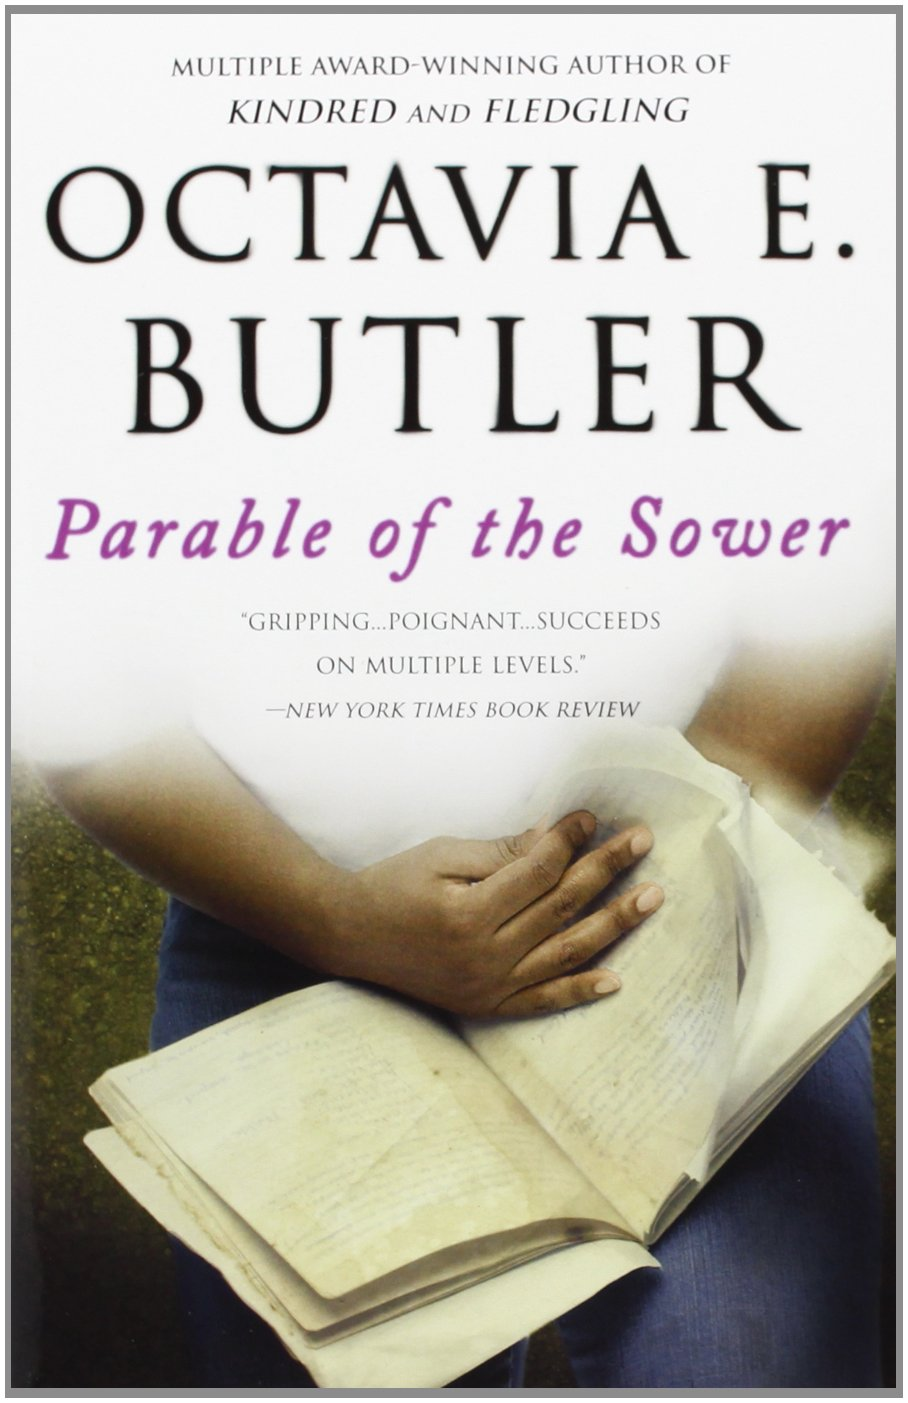 Second Monday Book Discussion: Parable of the Sower